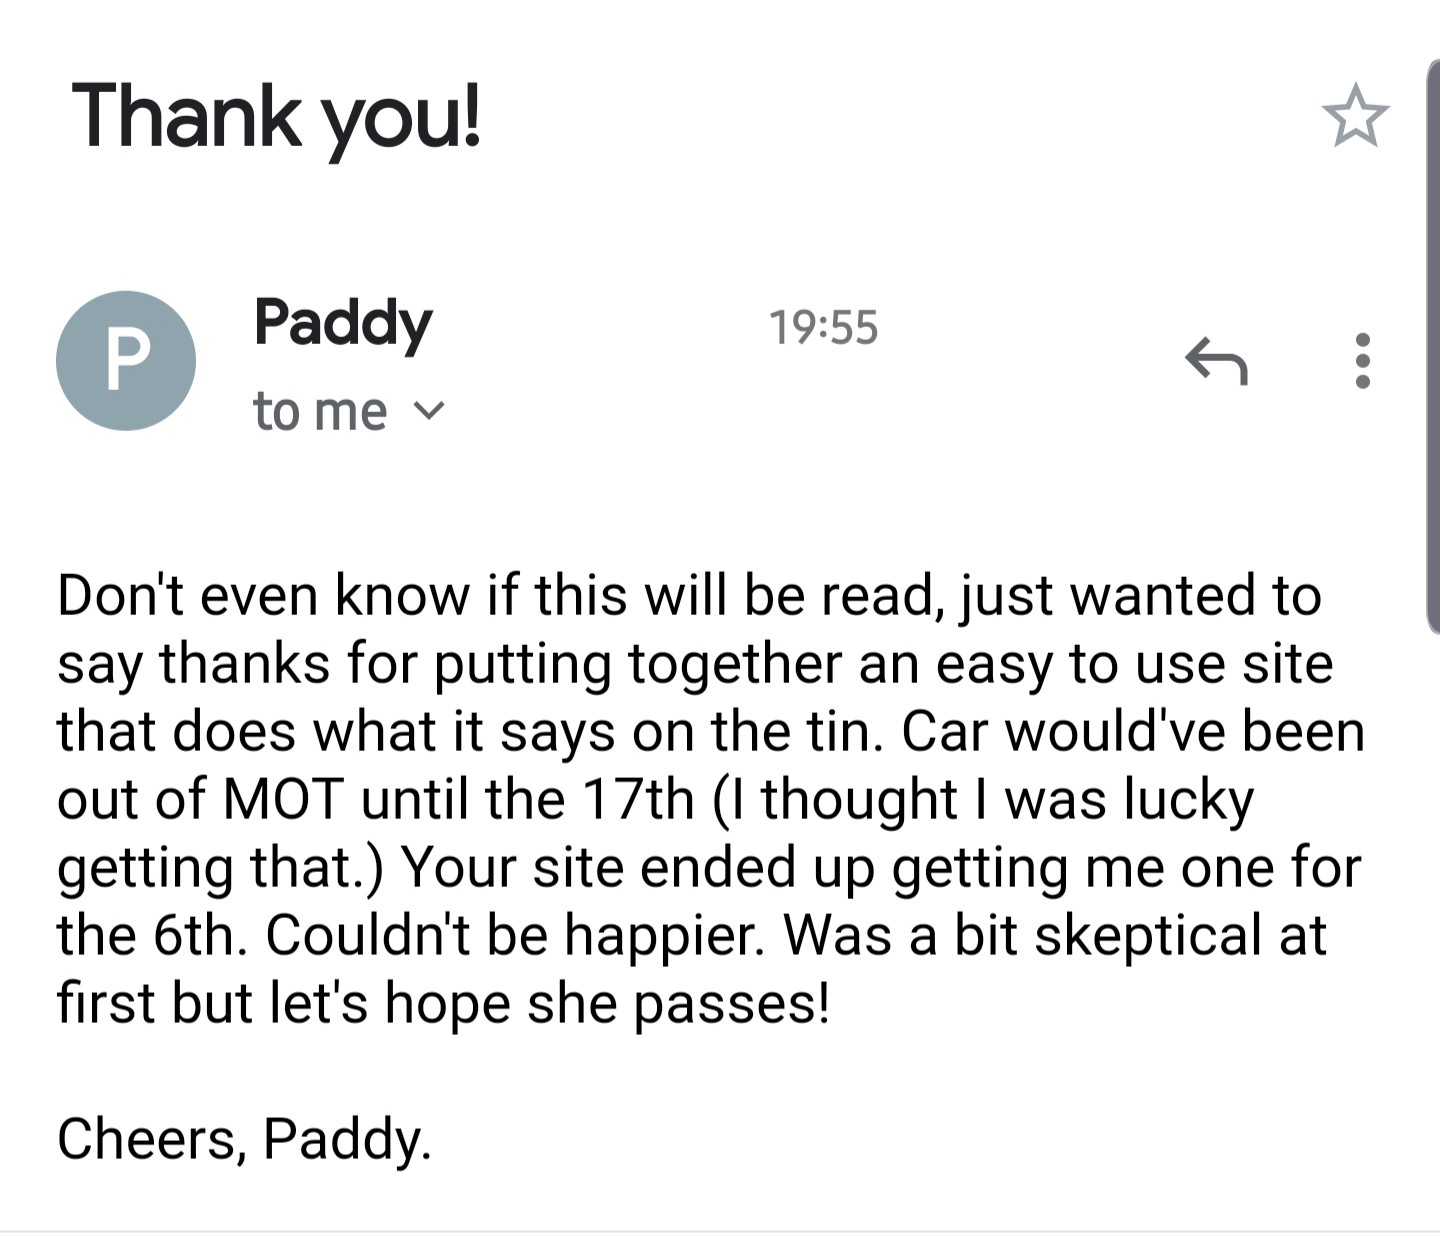 Testimonial from Paddy